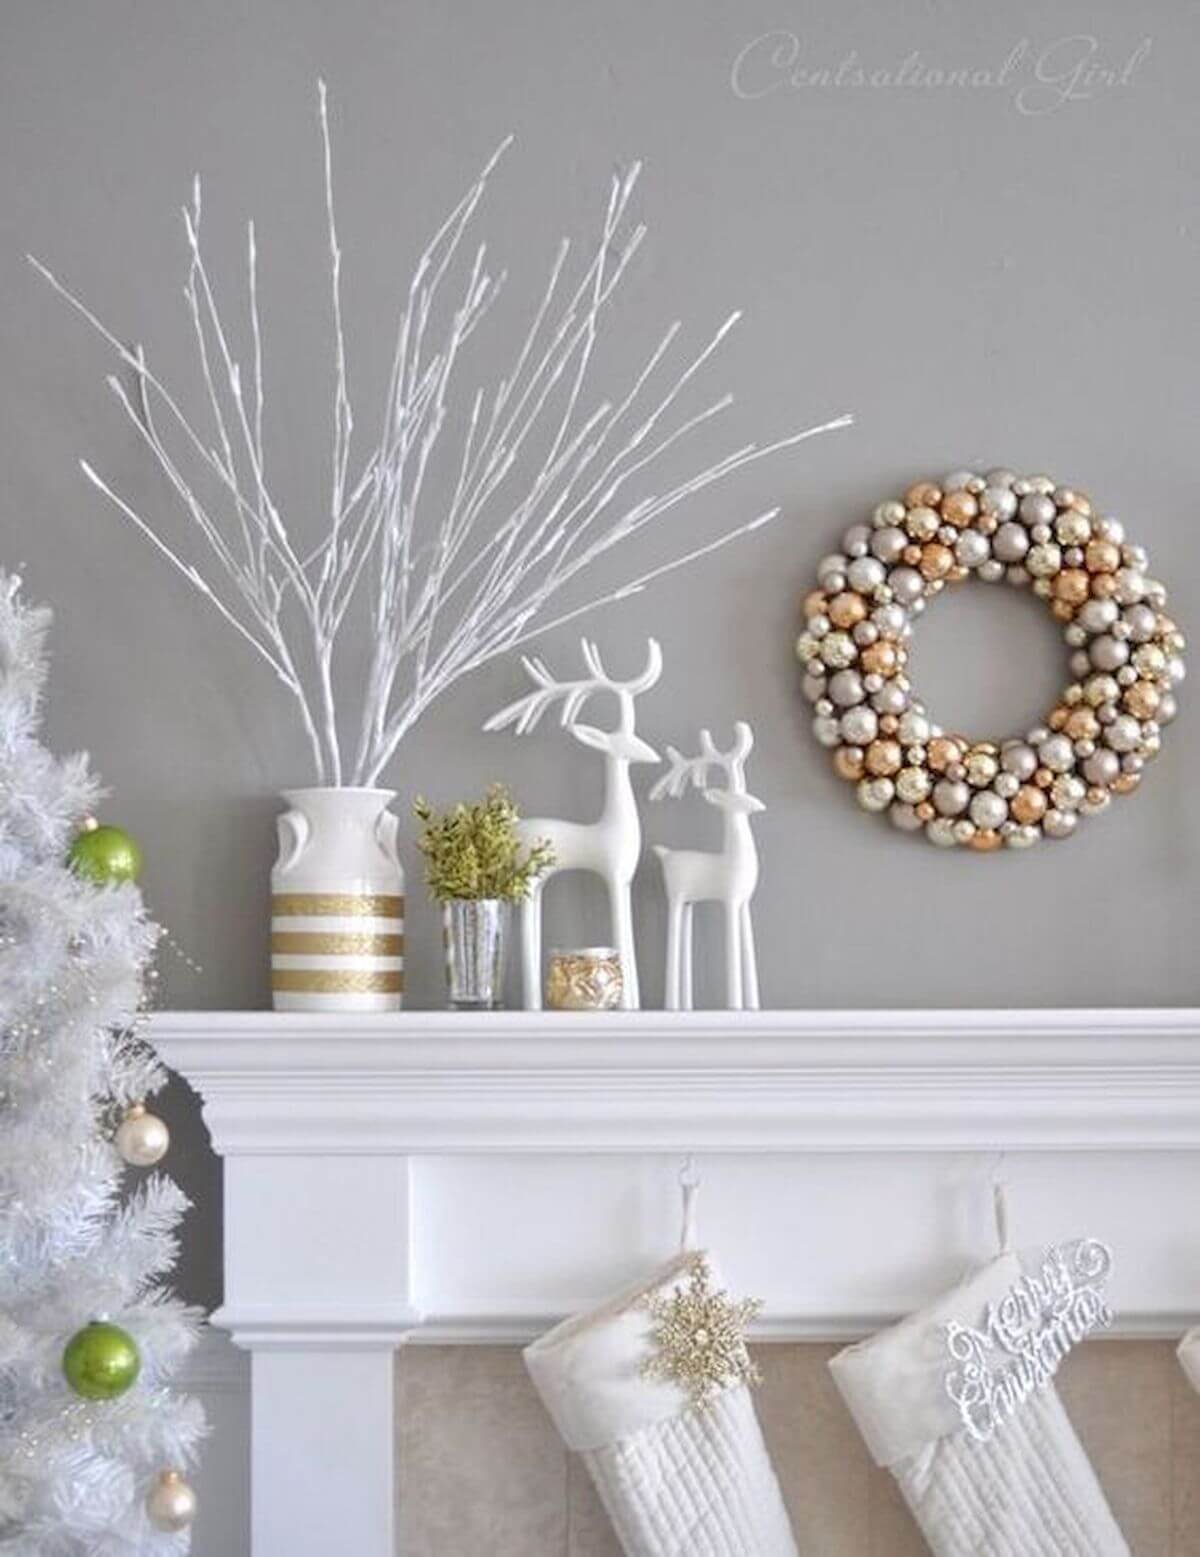 17 Best Gold Christmas Decor Ideas And Designs For 2021